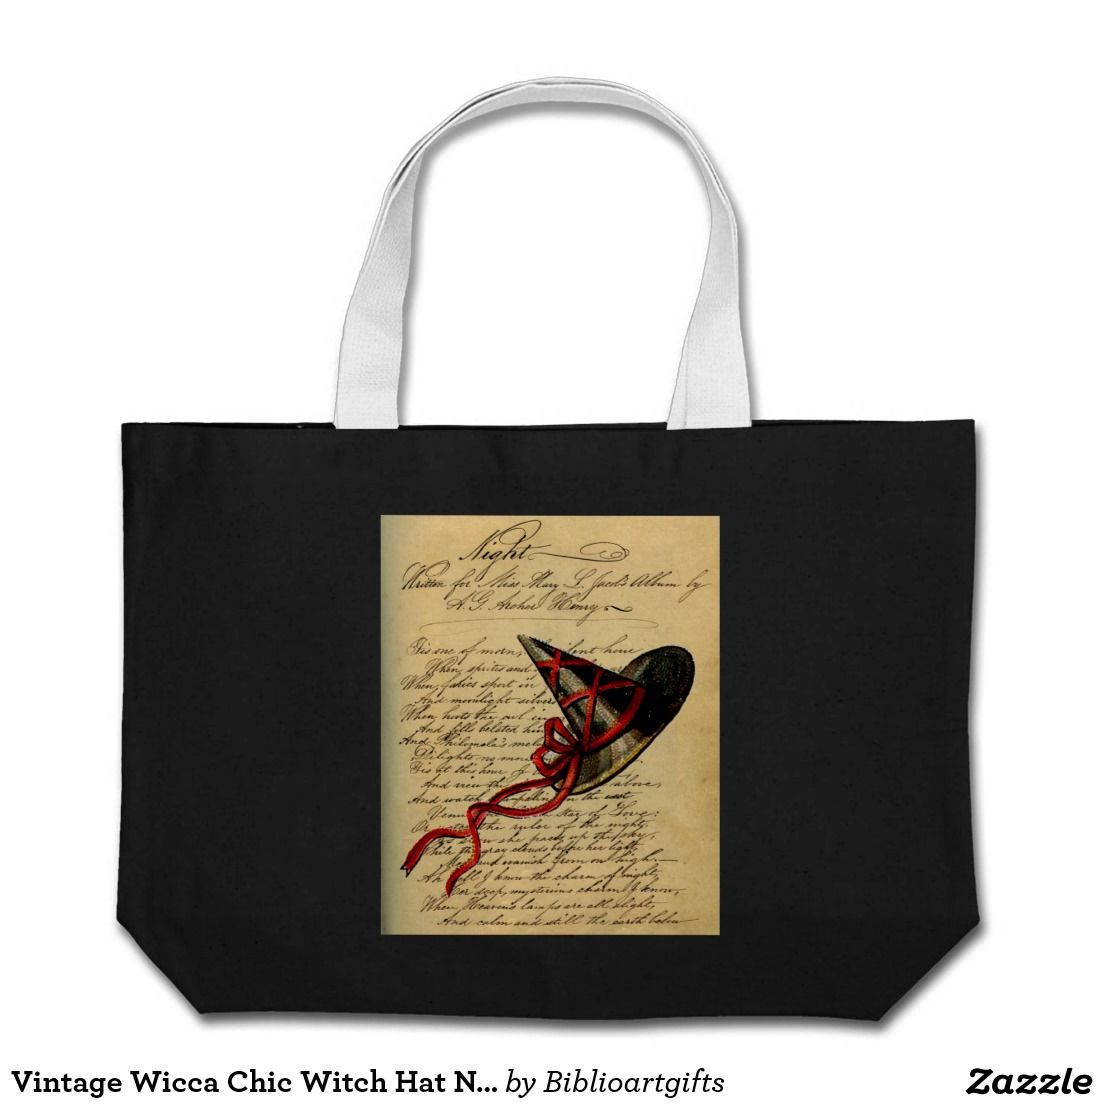 Vintage Wicca Chic Witch Hat Night Rhyme Tote Bag